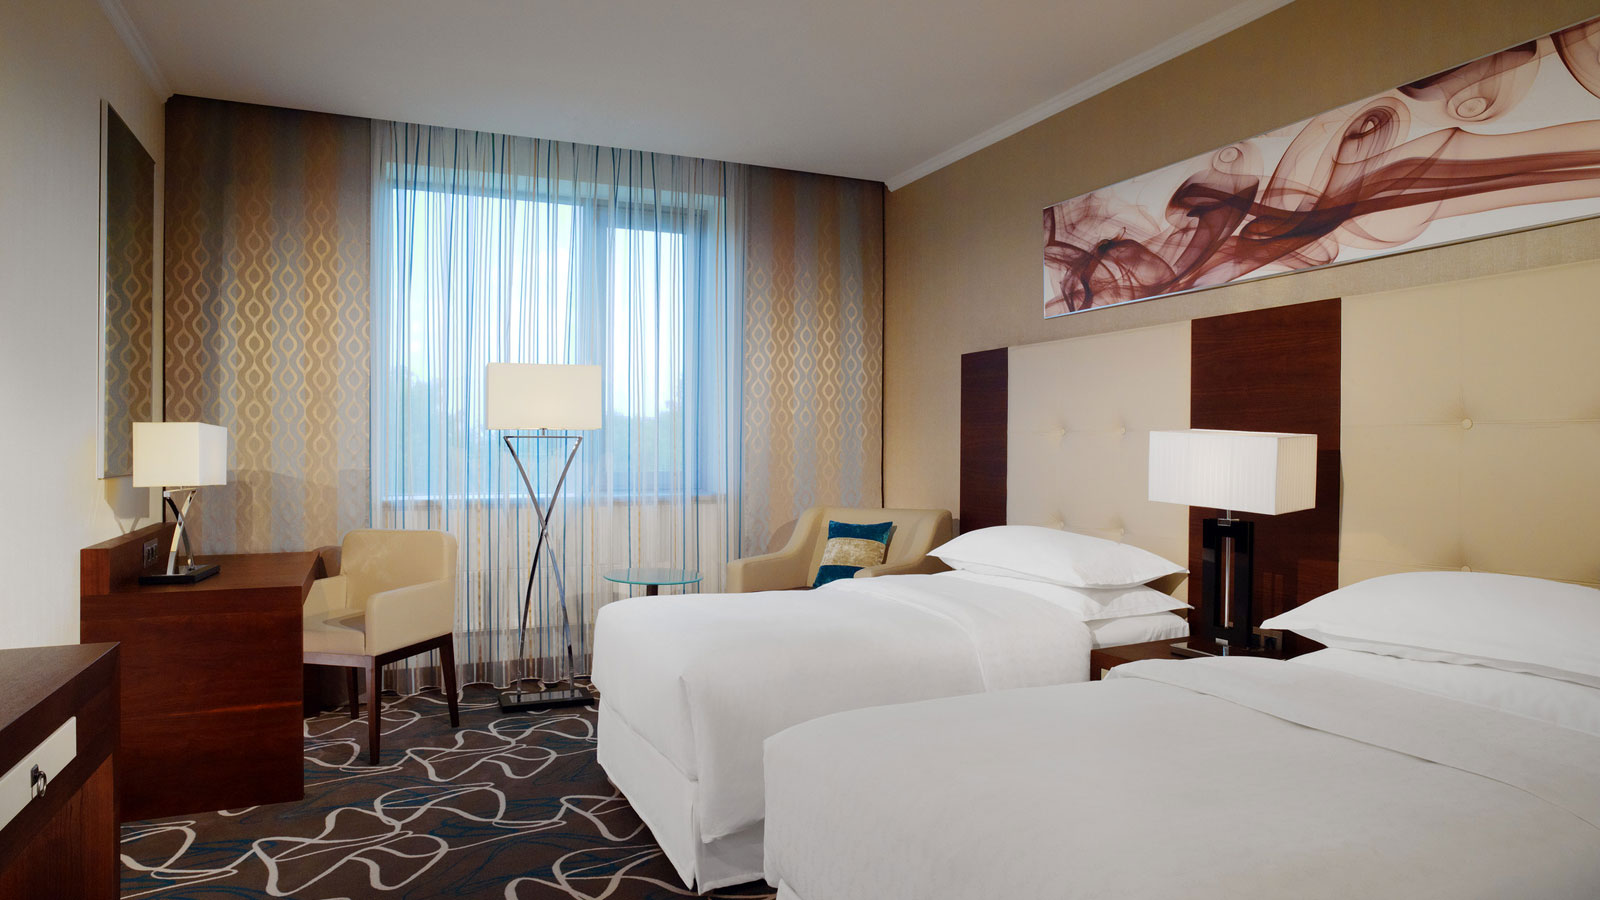 Classic twin room with Sheraton Signature Sleep Experience beds for a comfortable stay at Sheraton Moscow Sheremetyevo